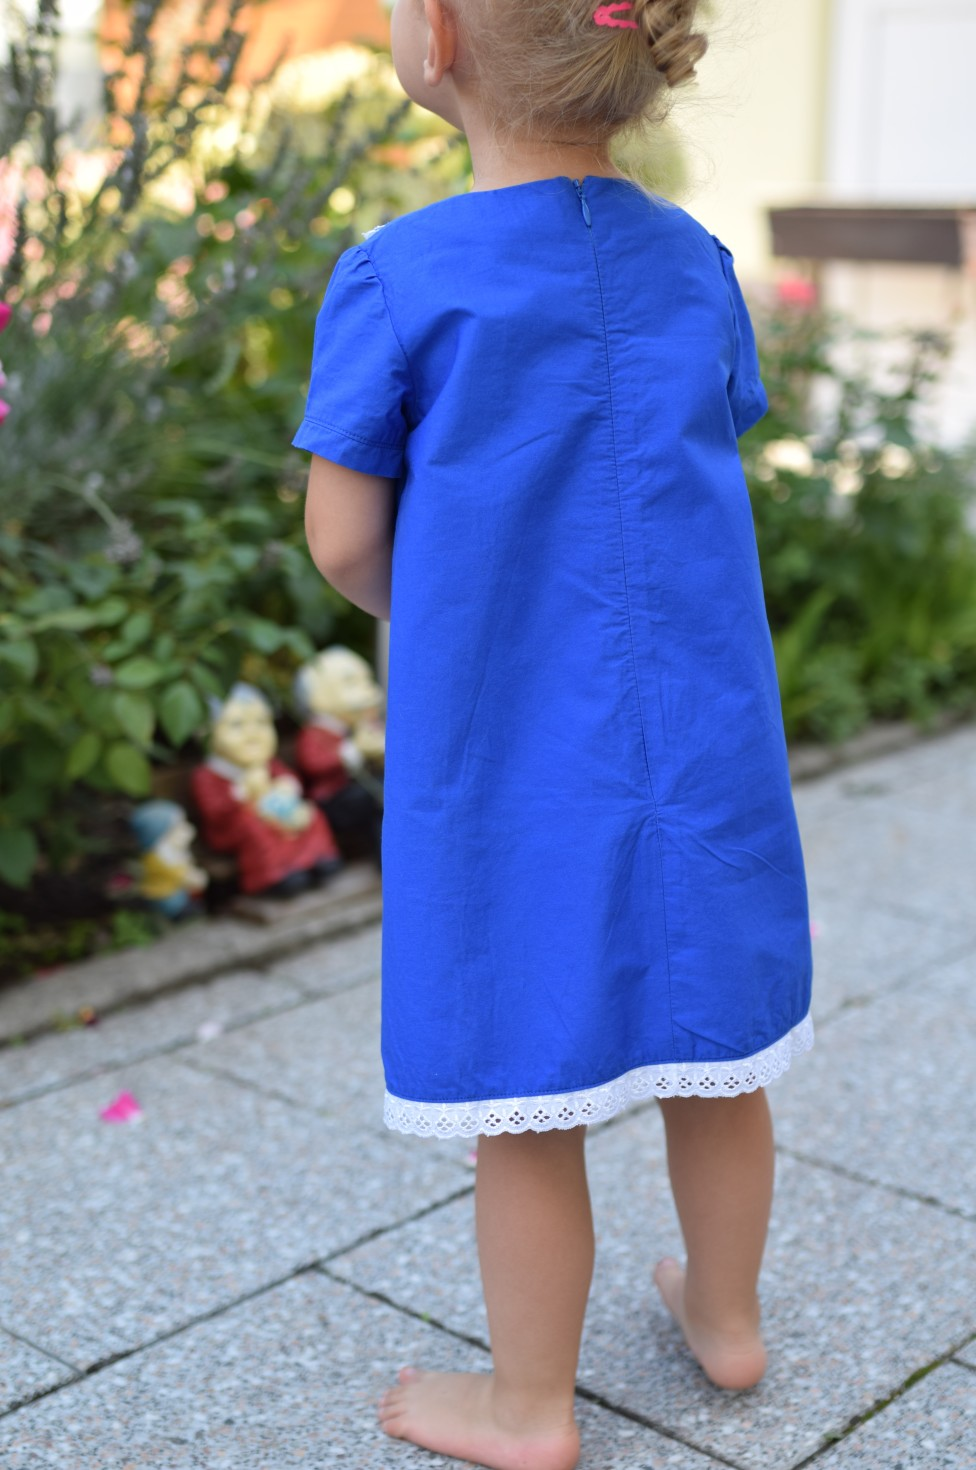 burda style Nutzerkreation ERSO_Design Sommerkleid